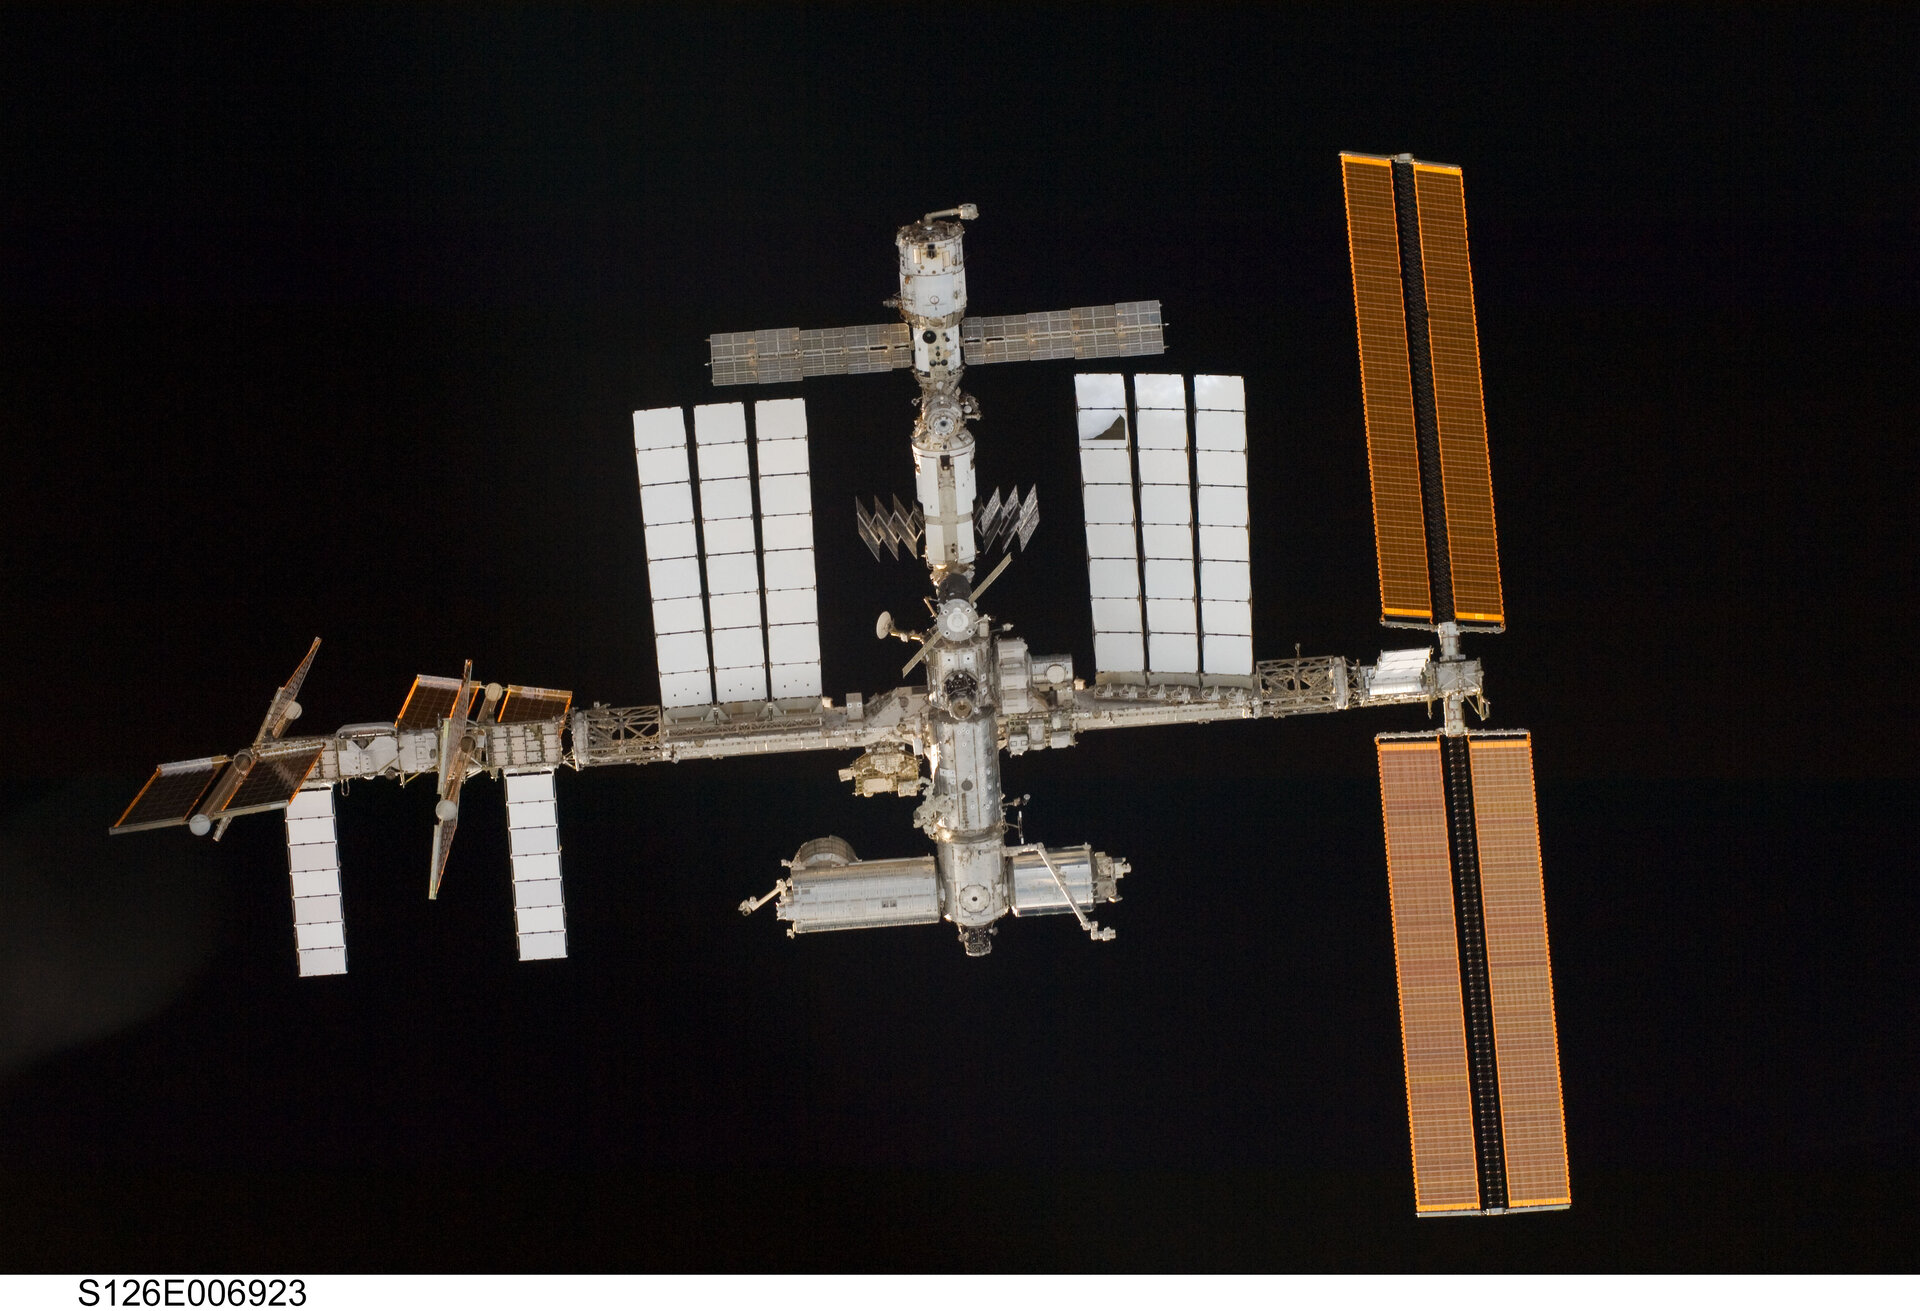 ISS is an ultimate science facility